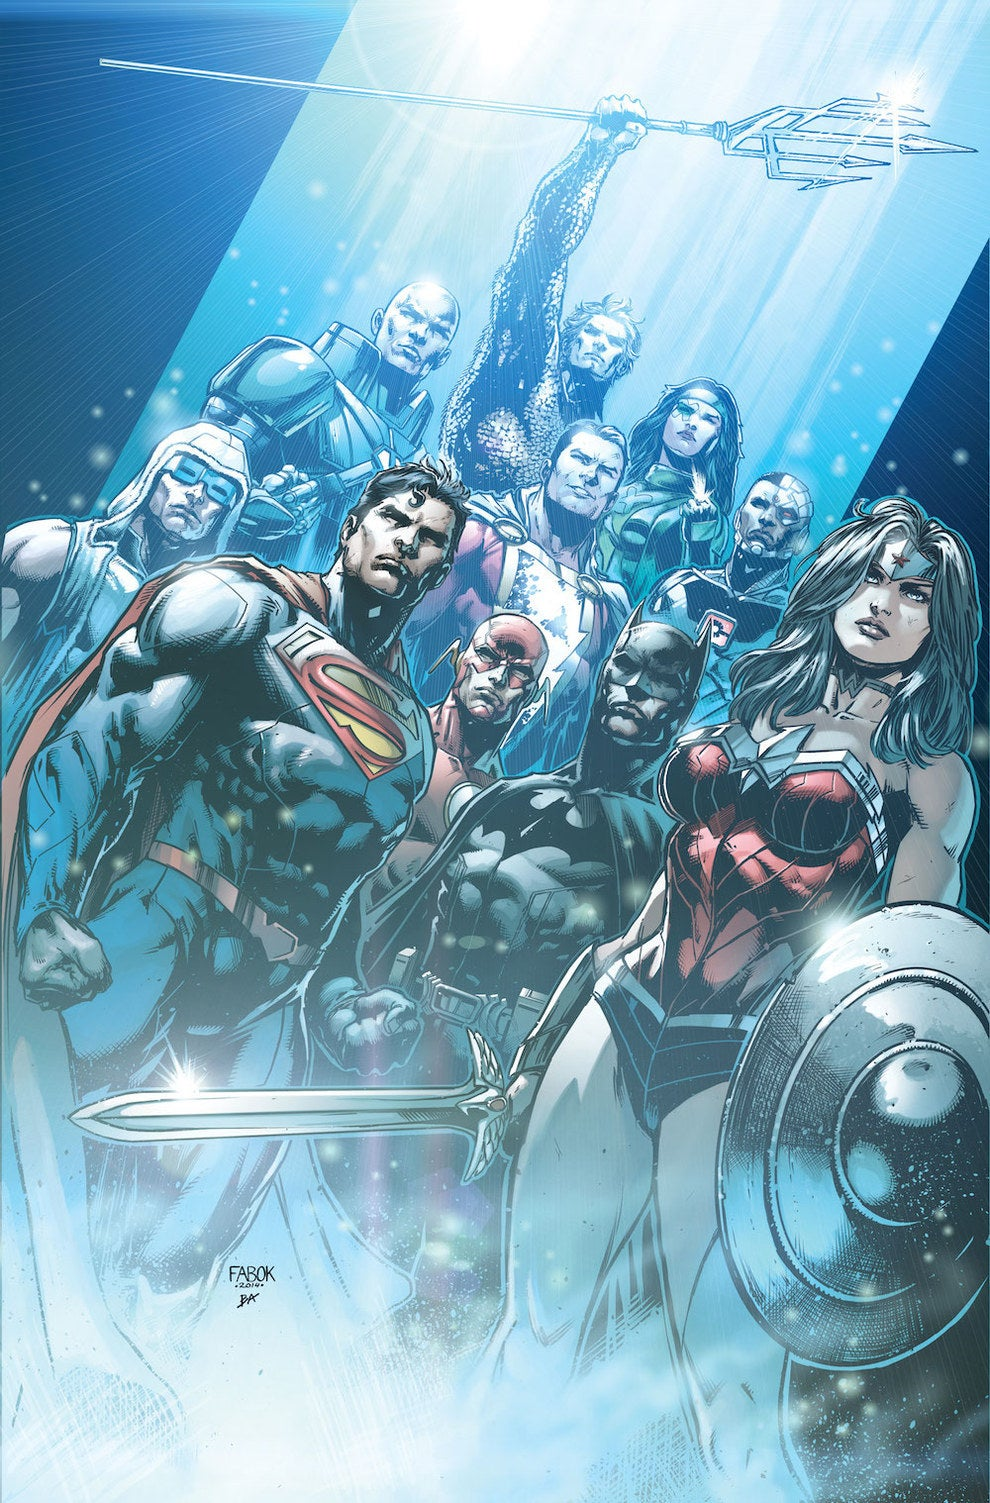 jason-fabok-league